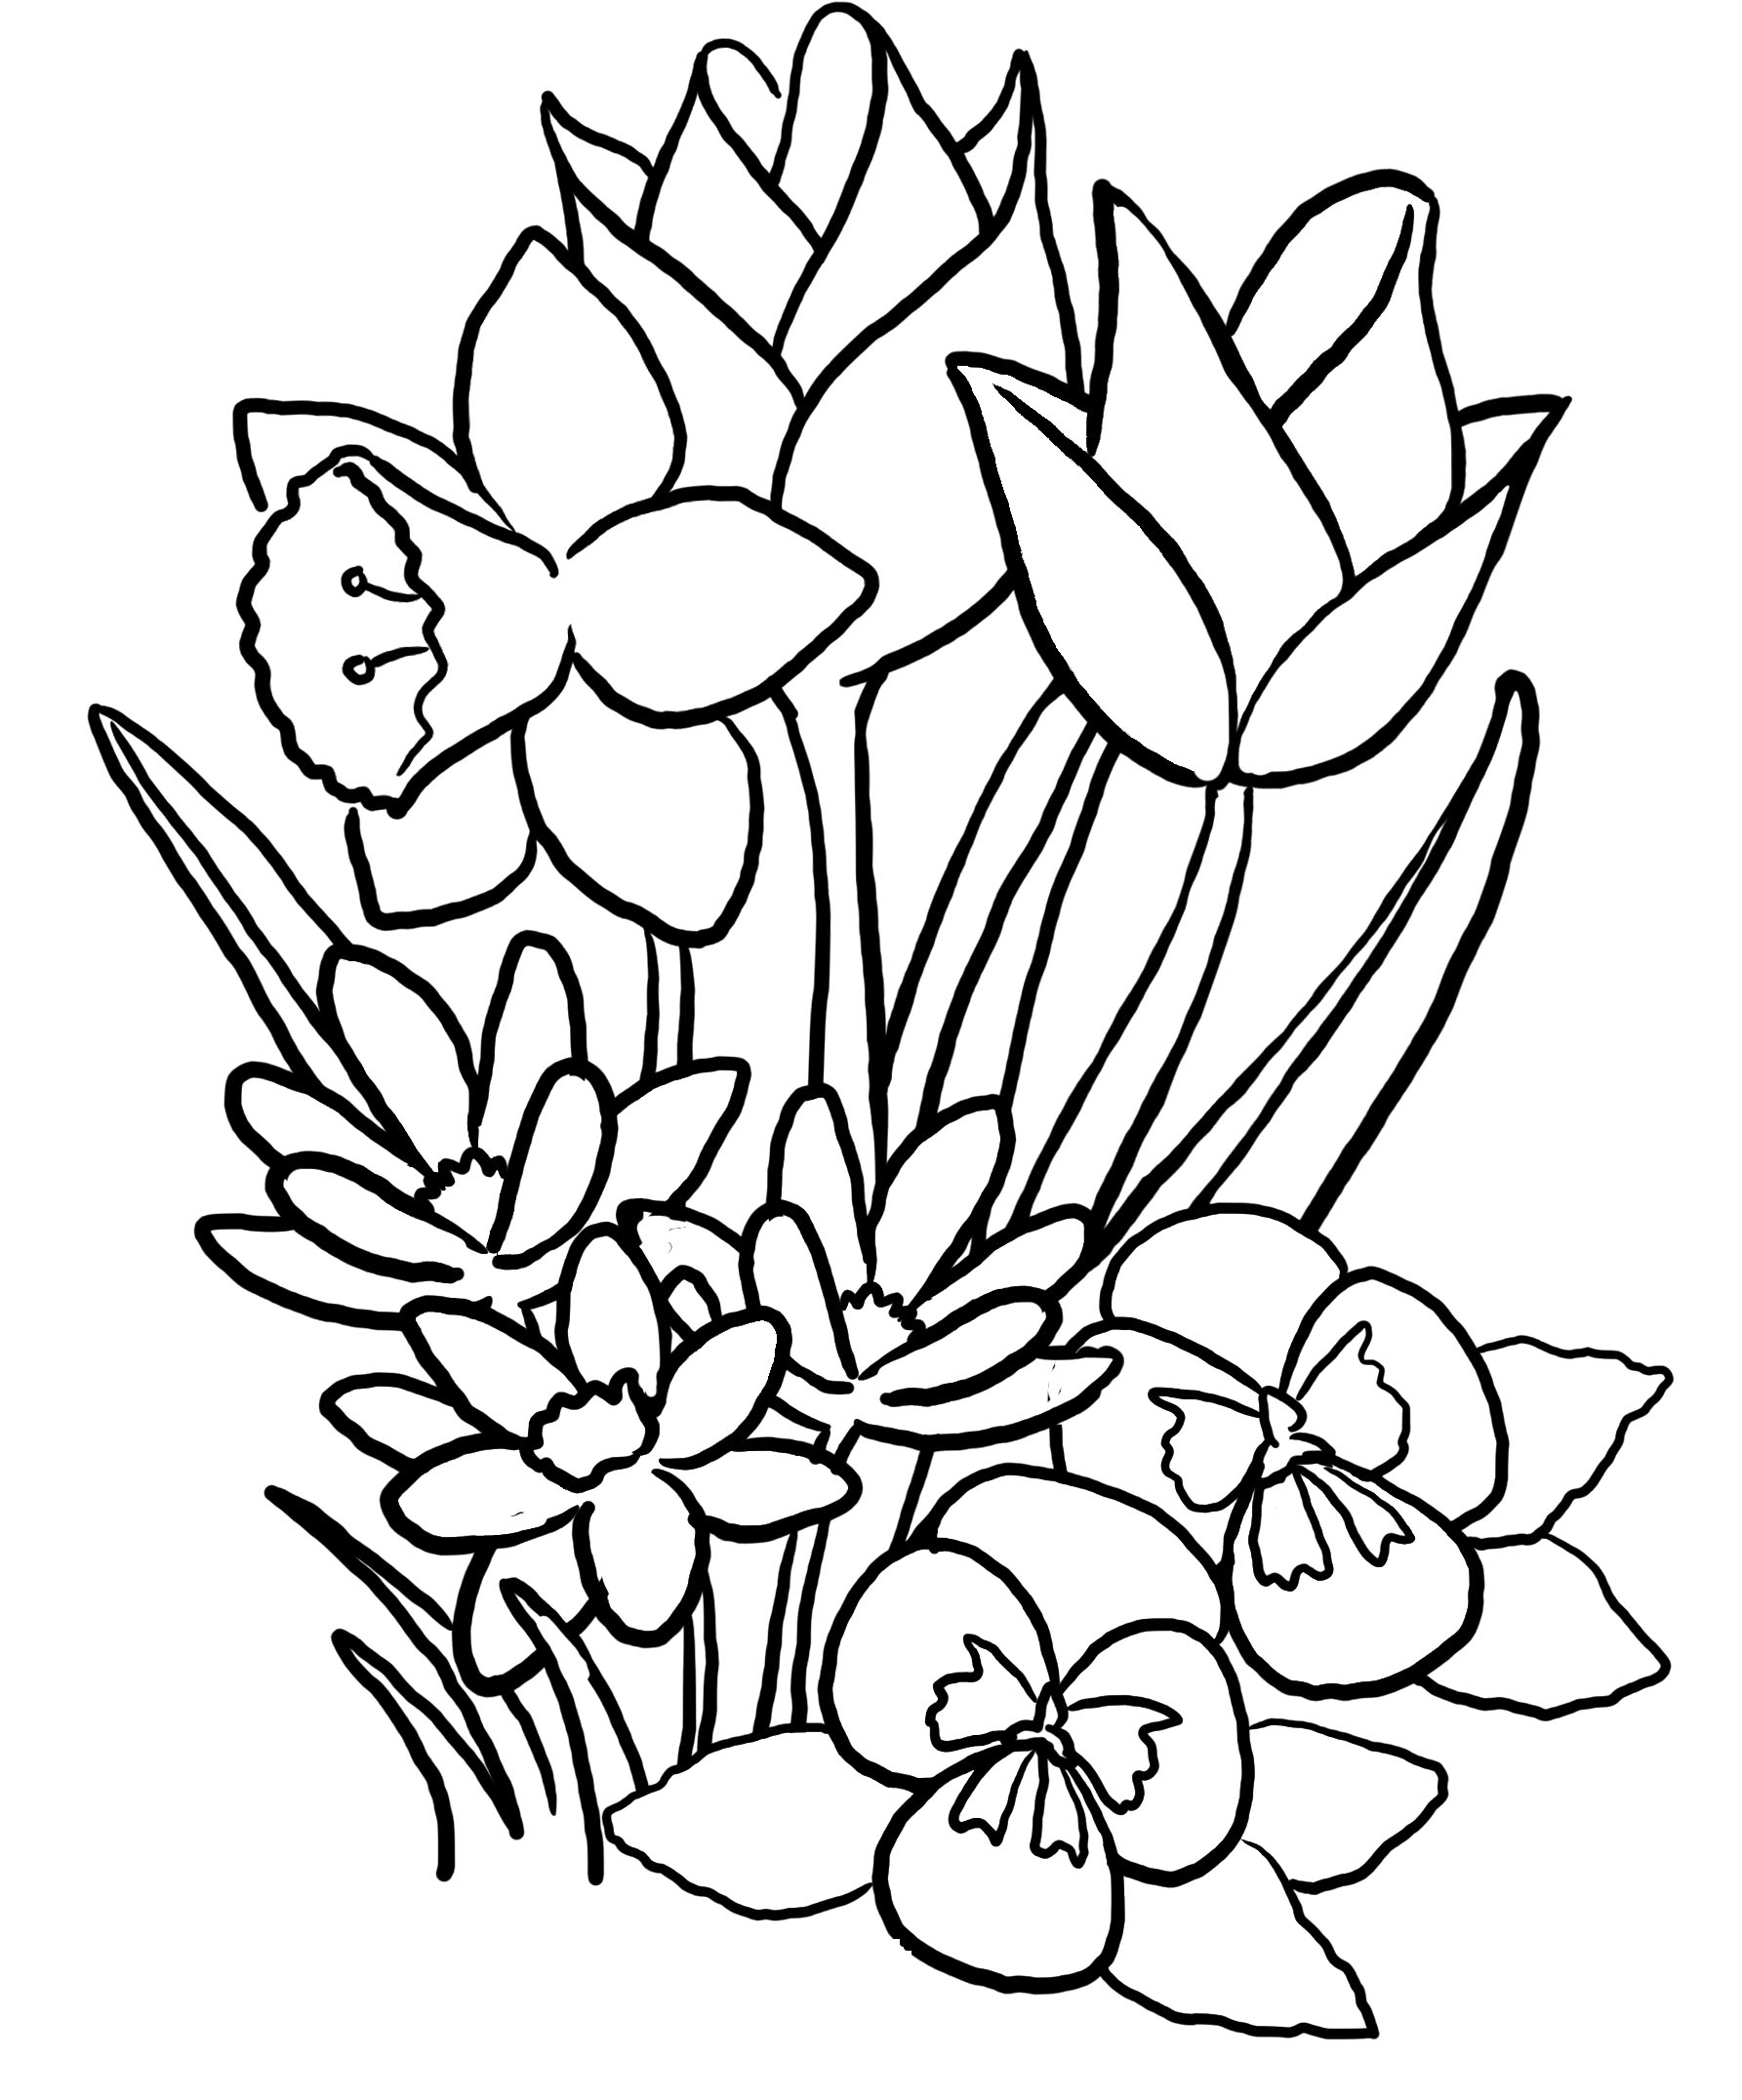 1785x2152 Free Printable Coloring Pages For Adults Printable